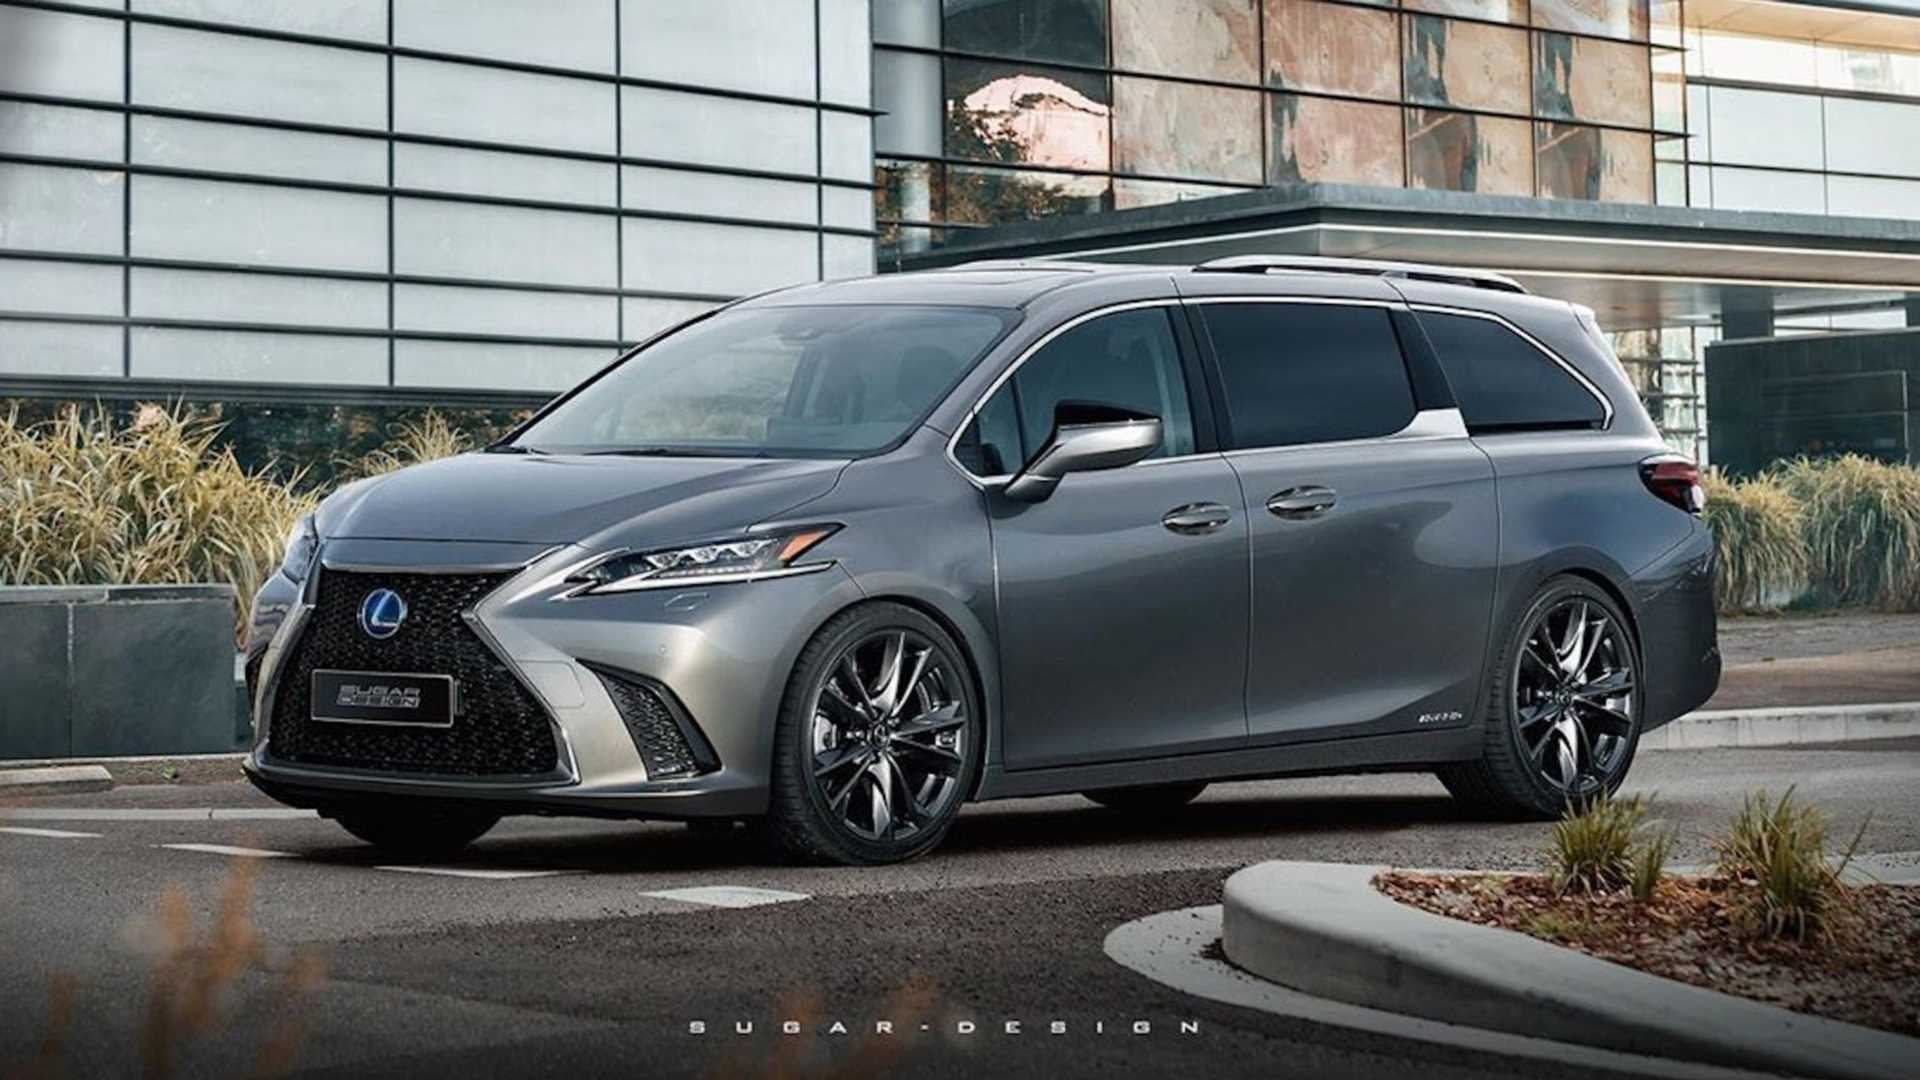 Lexus Minivan Based On New Sienna Would Make Incredible Exec Express